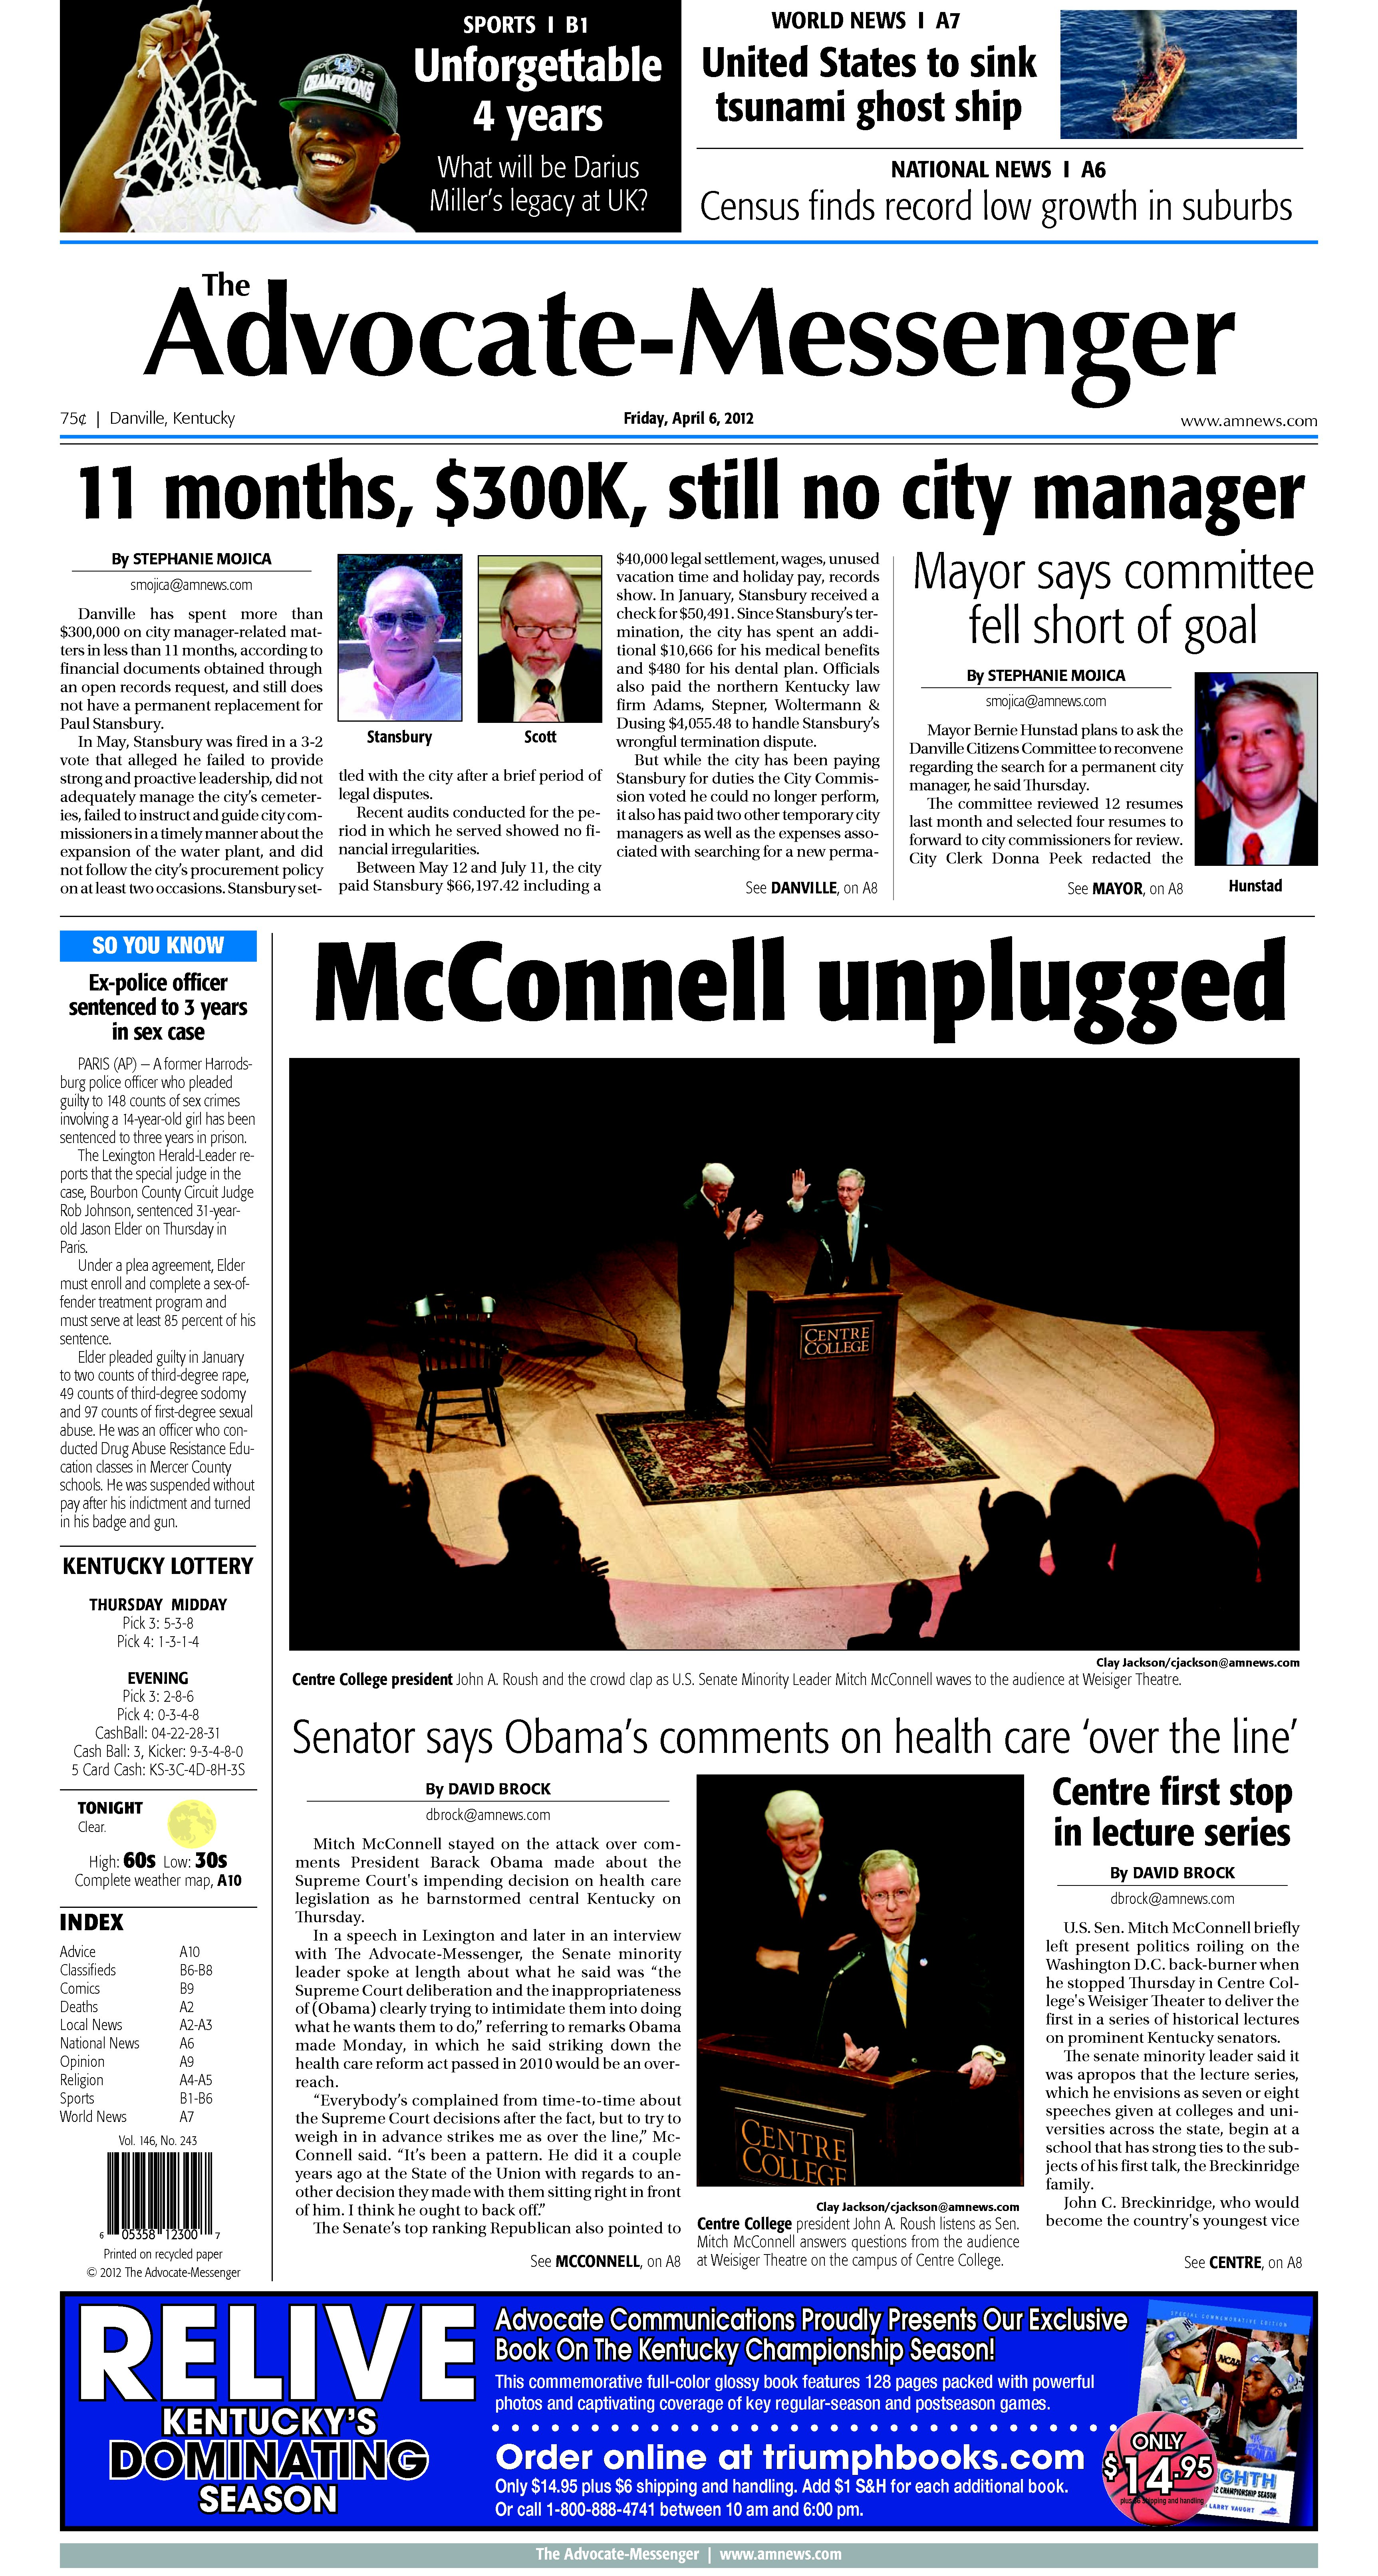 Image 1 of Advocate Messenger, April 06, 2012 - Kentucky